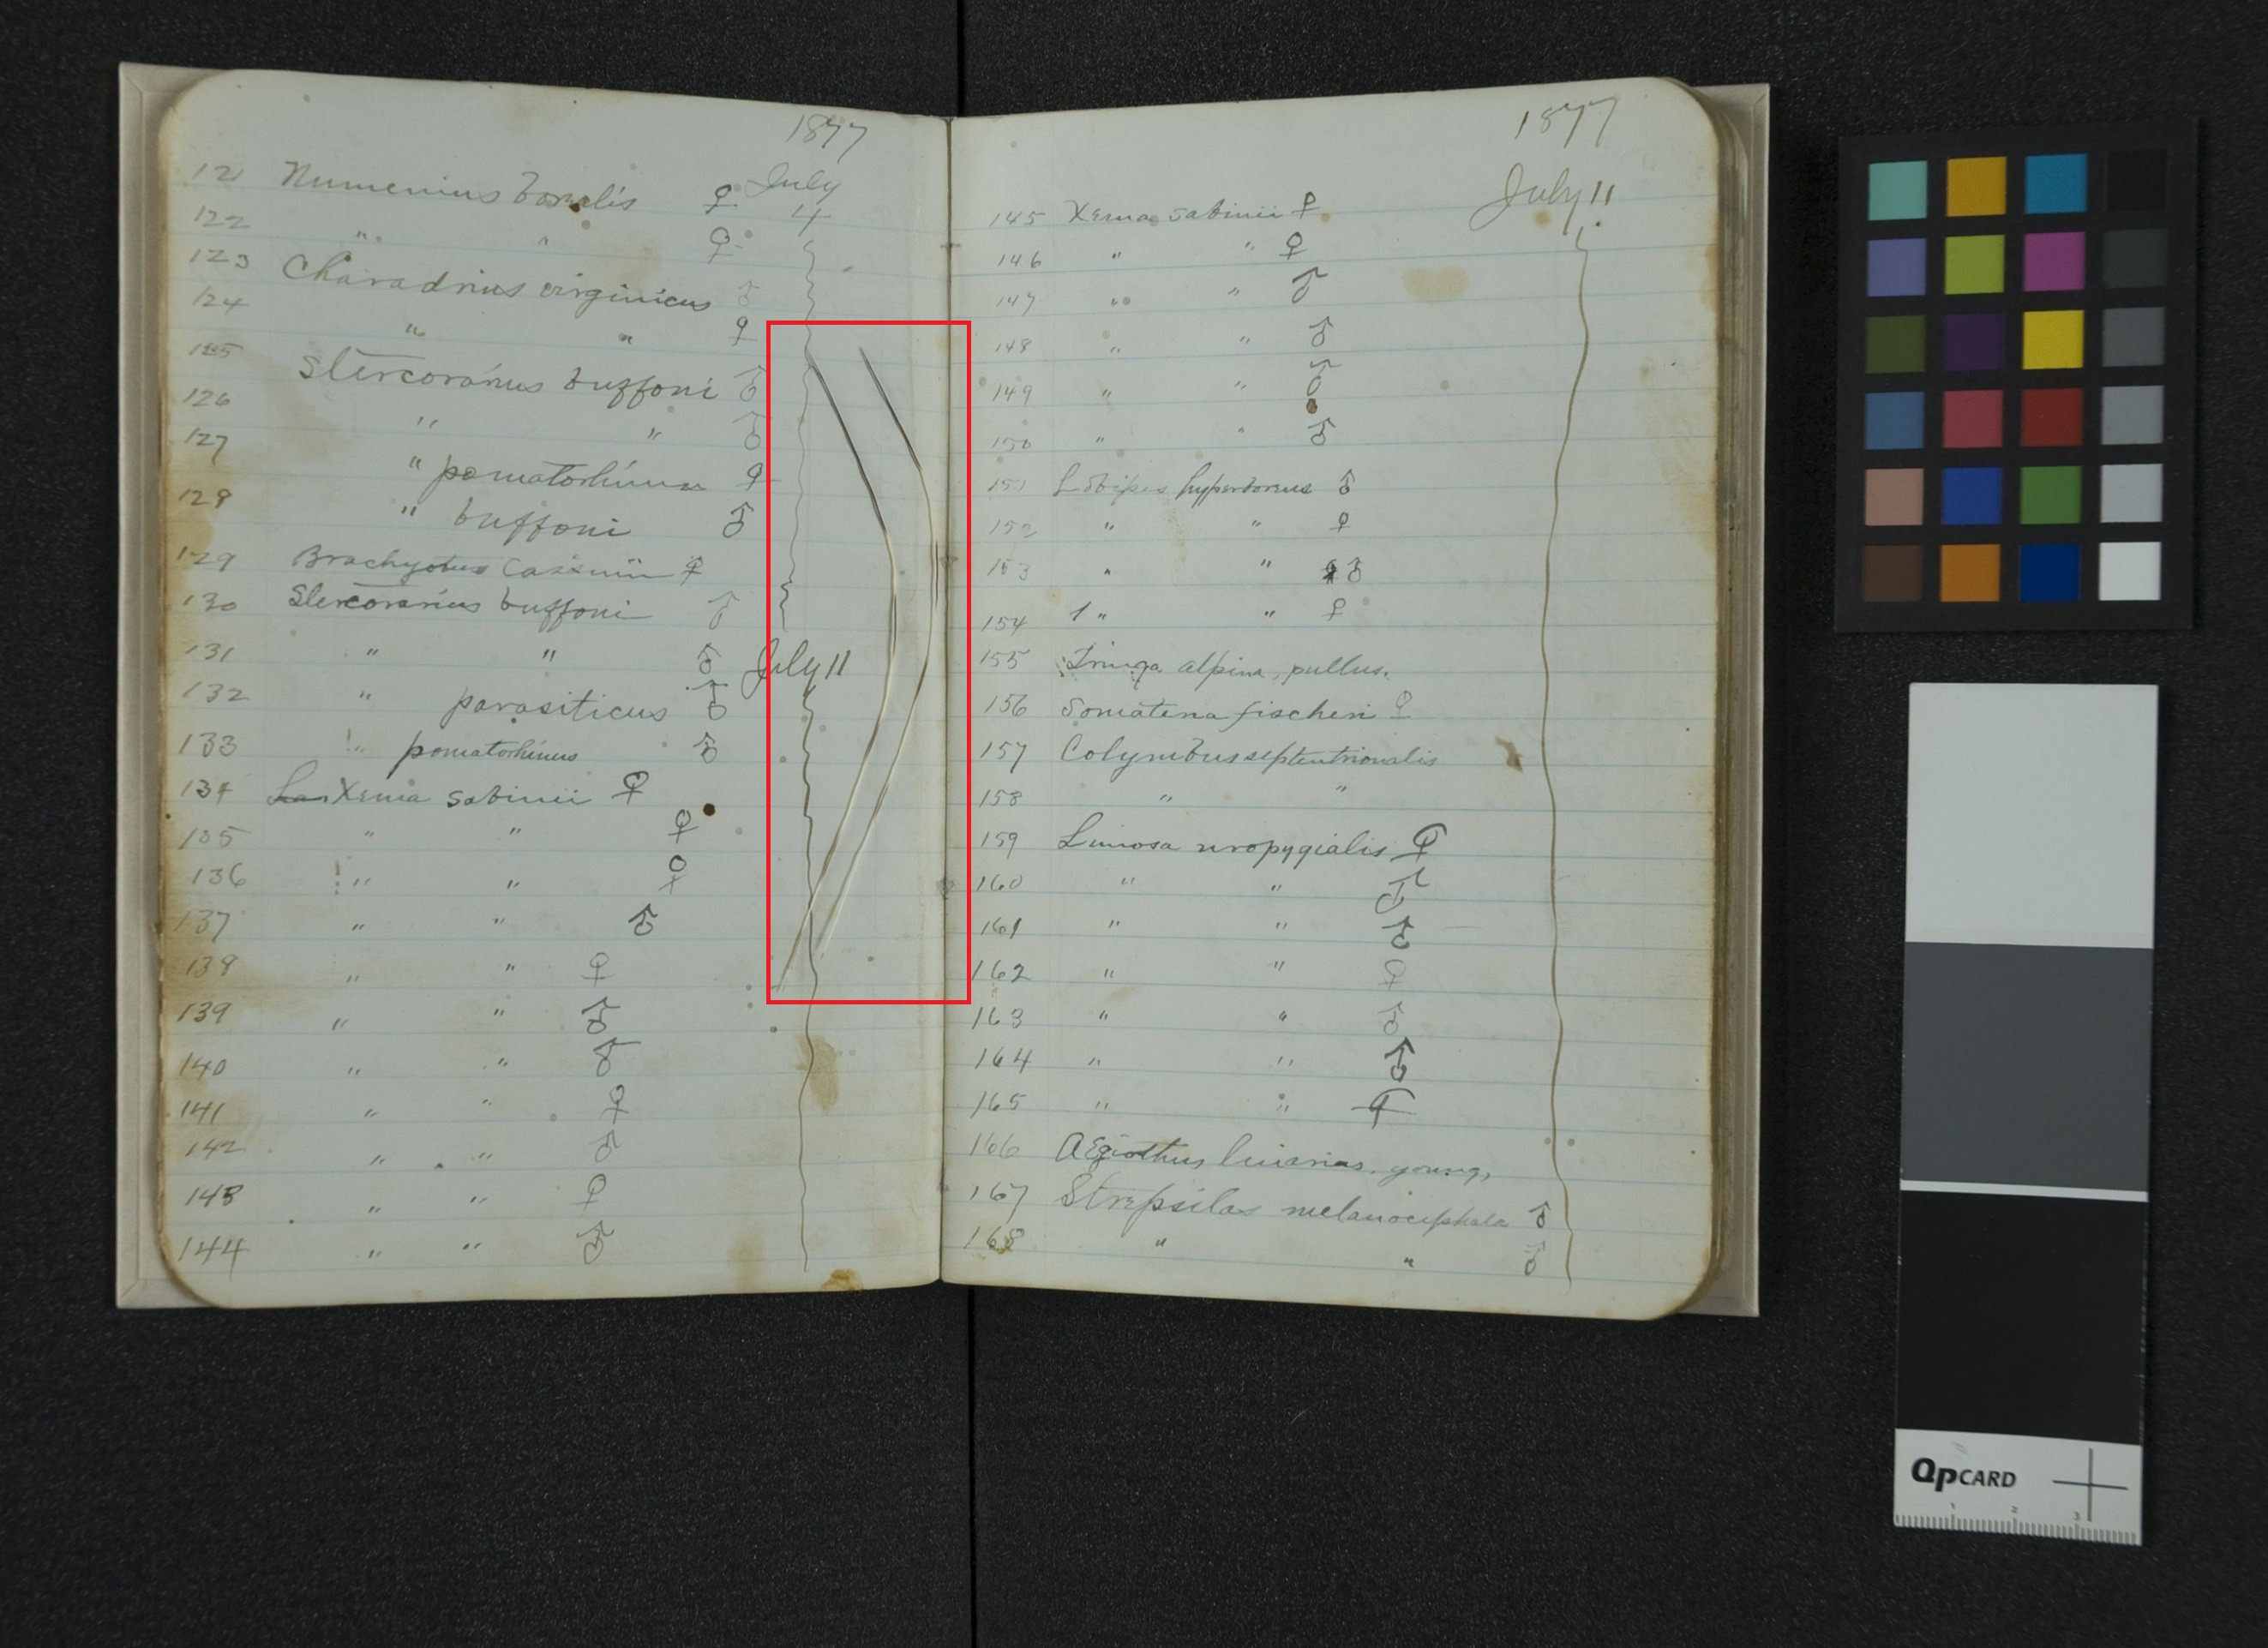 The mystery hairs, November 1, 2013, by Andrea Hall, Accession 12-320 - Edward William Nelson Field Notes, 1869-1886, Smithsonian Institution Archives.